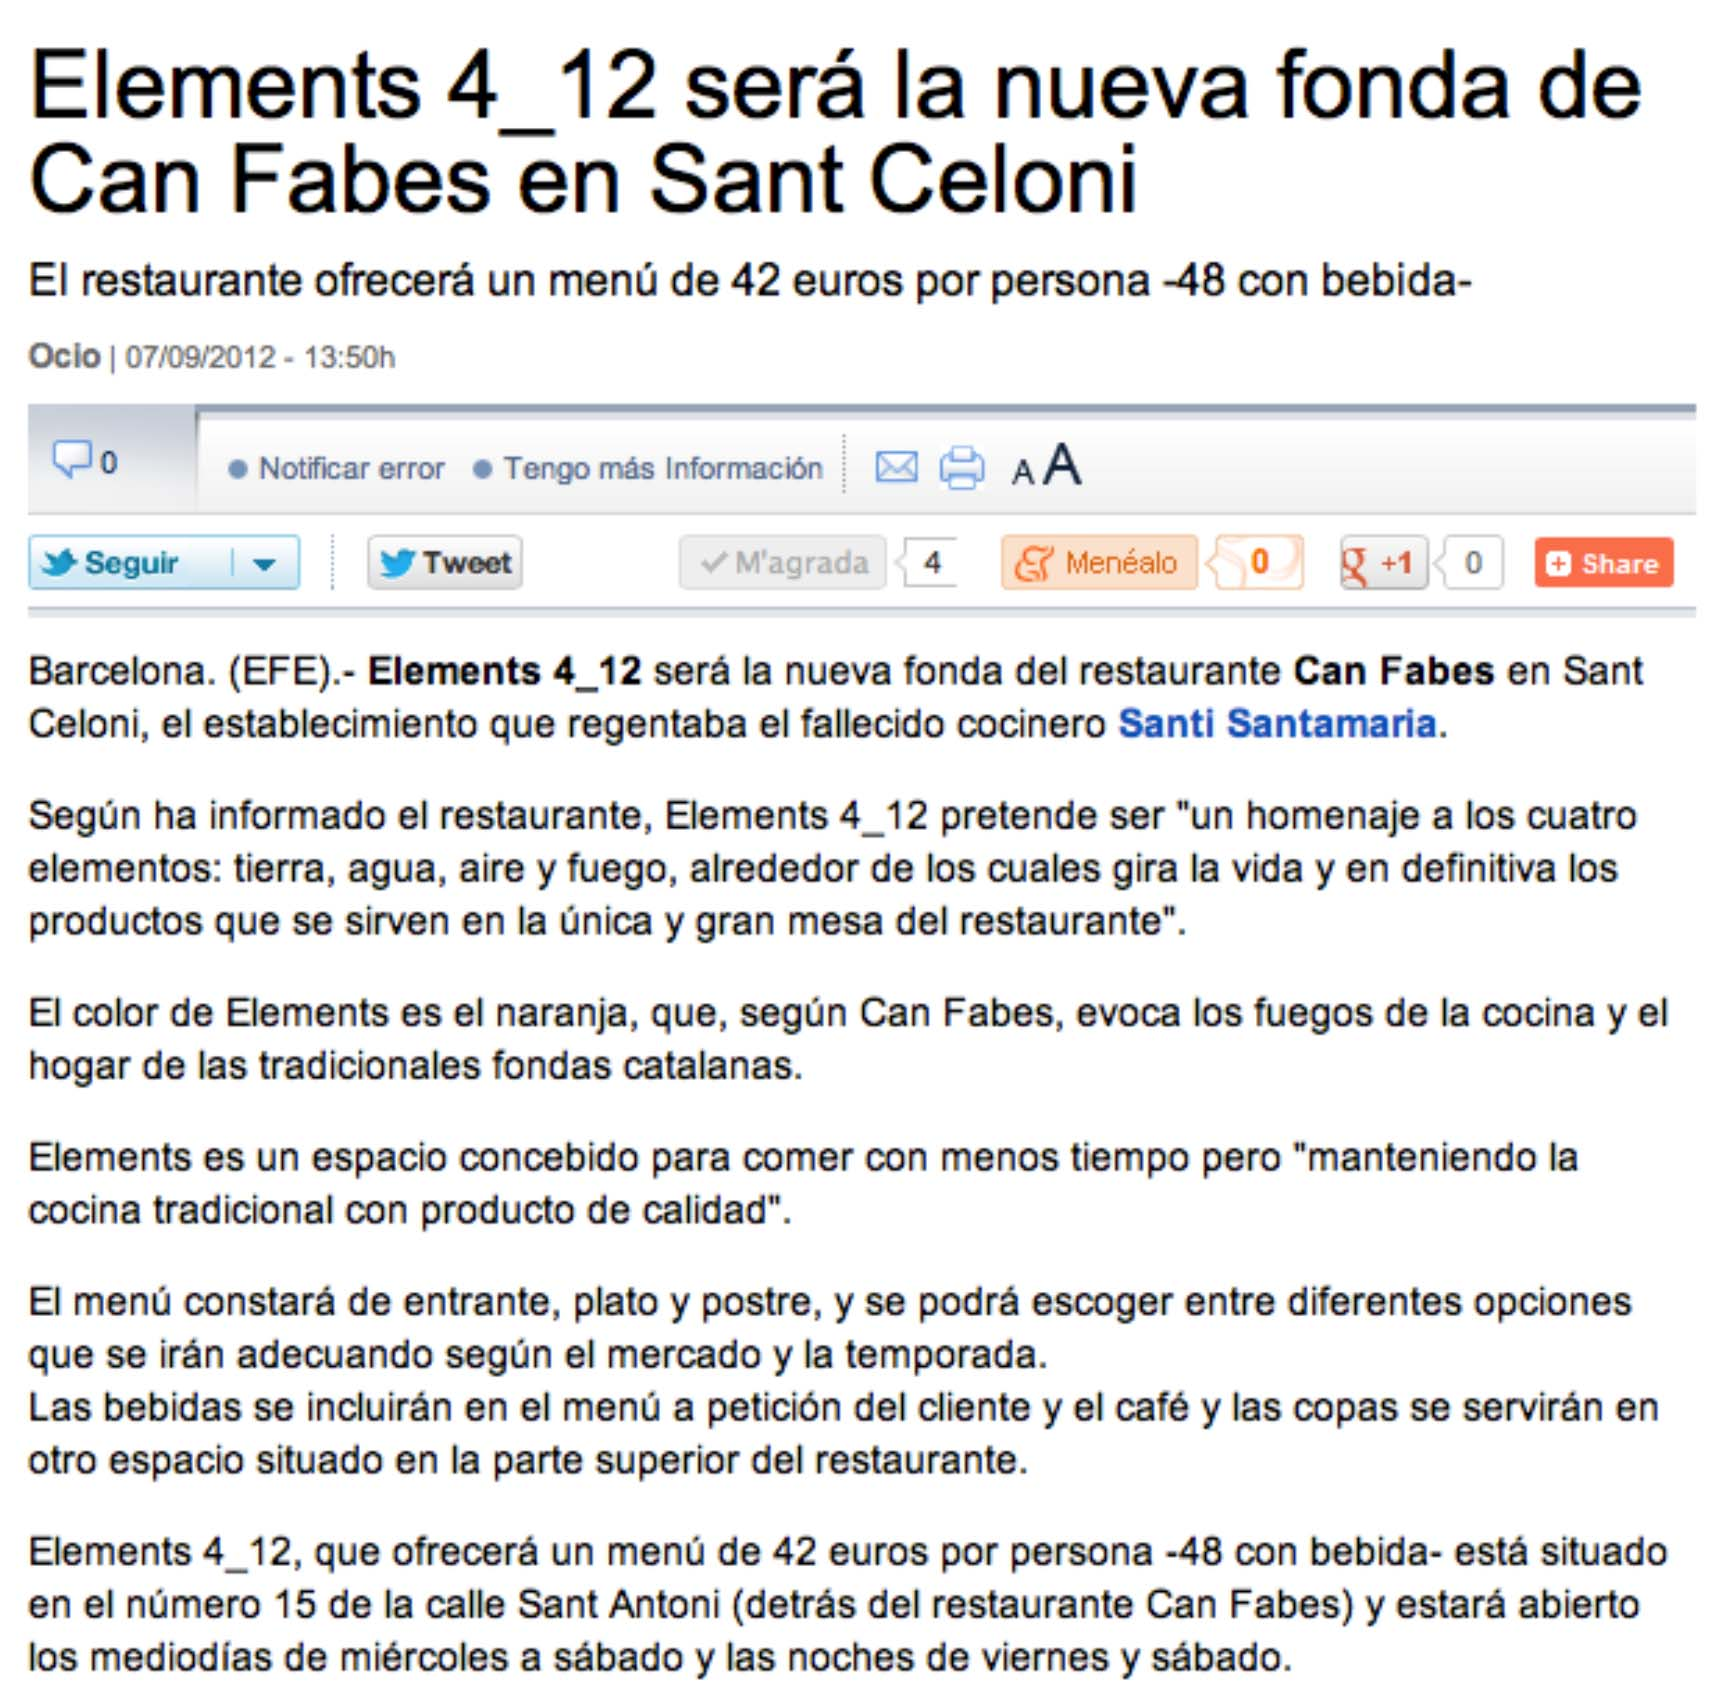 ELEMENTS 4_12 by Fabes